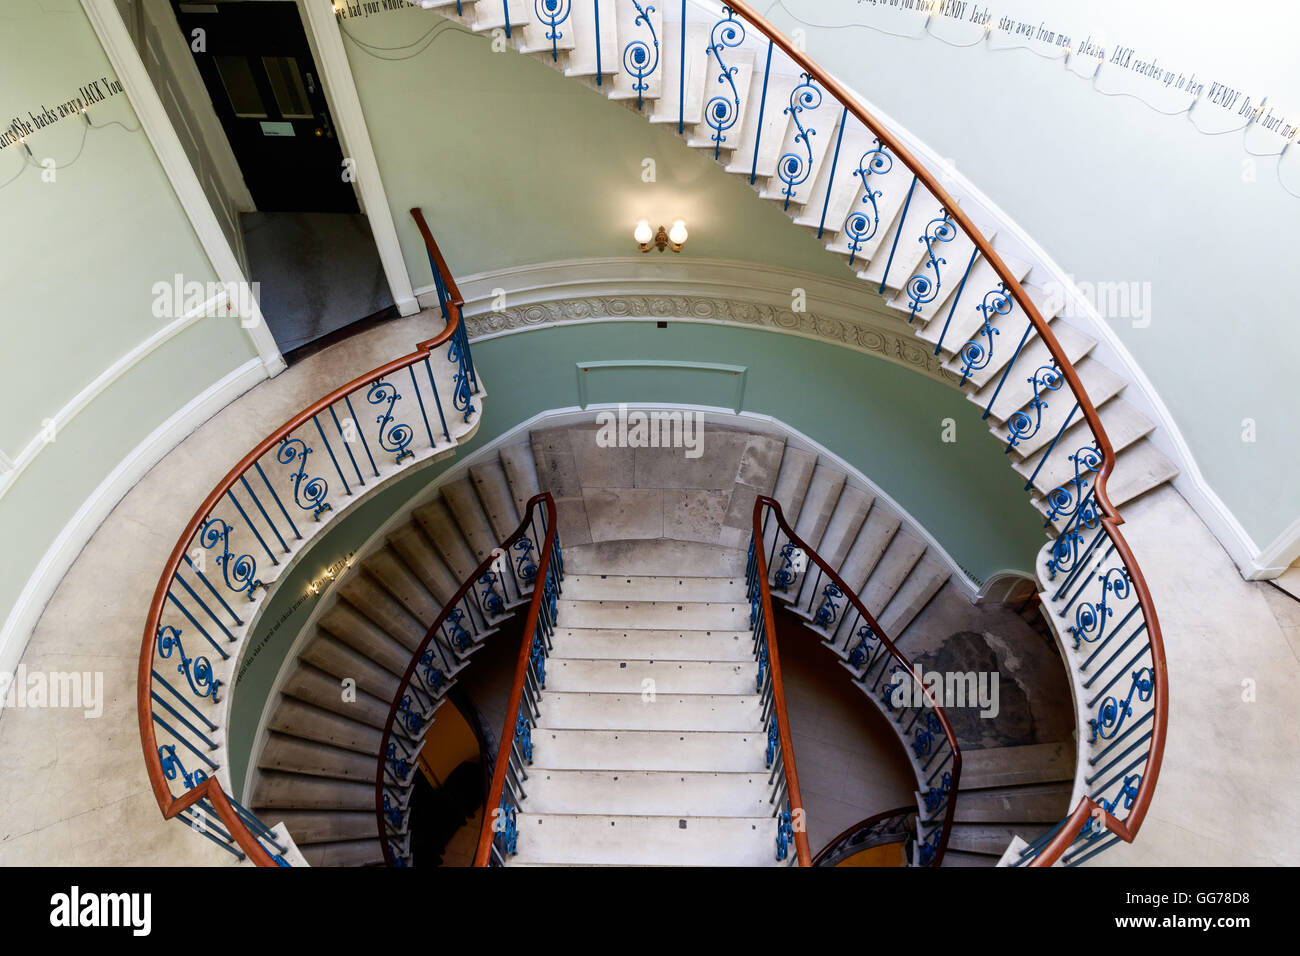 London, UK - July 5, 2016 - Rotunda Nelson Stair at the western side of Somerset House - Stock Image